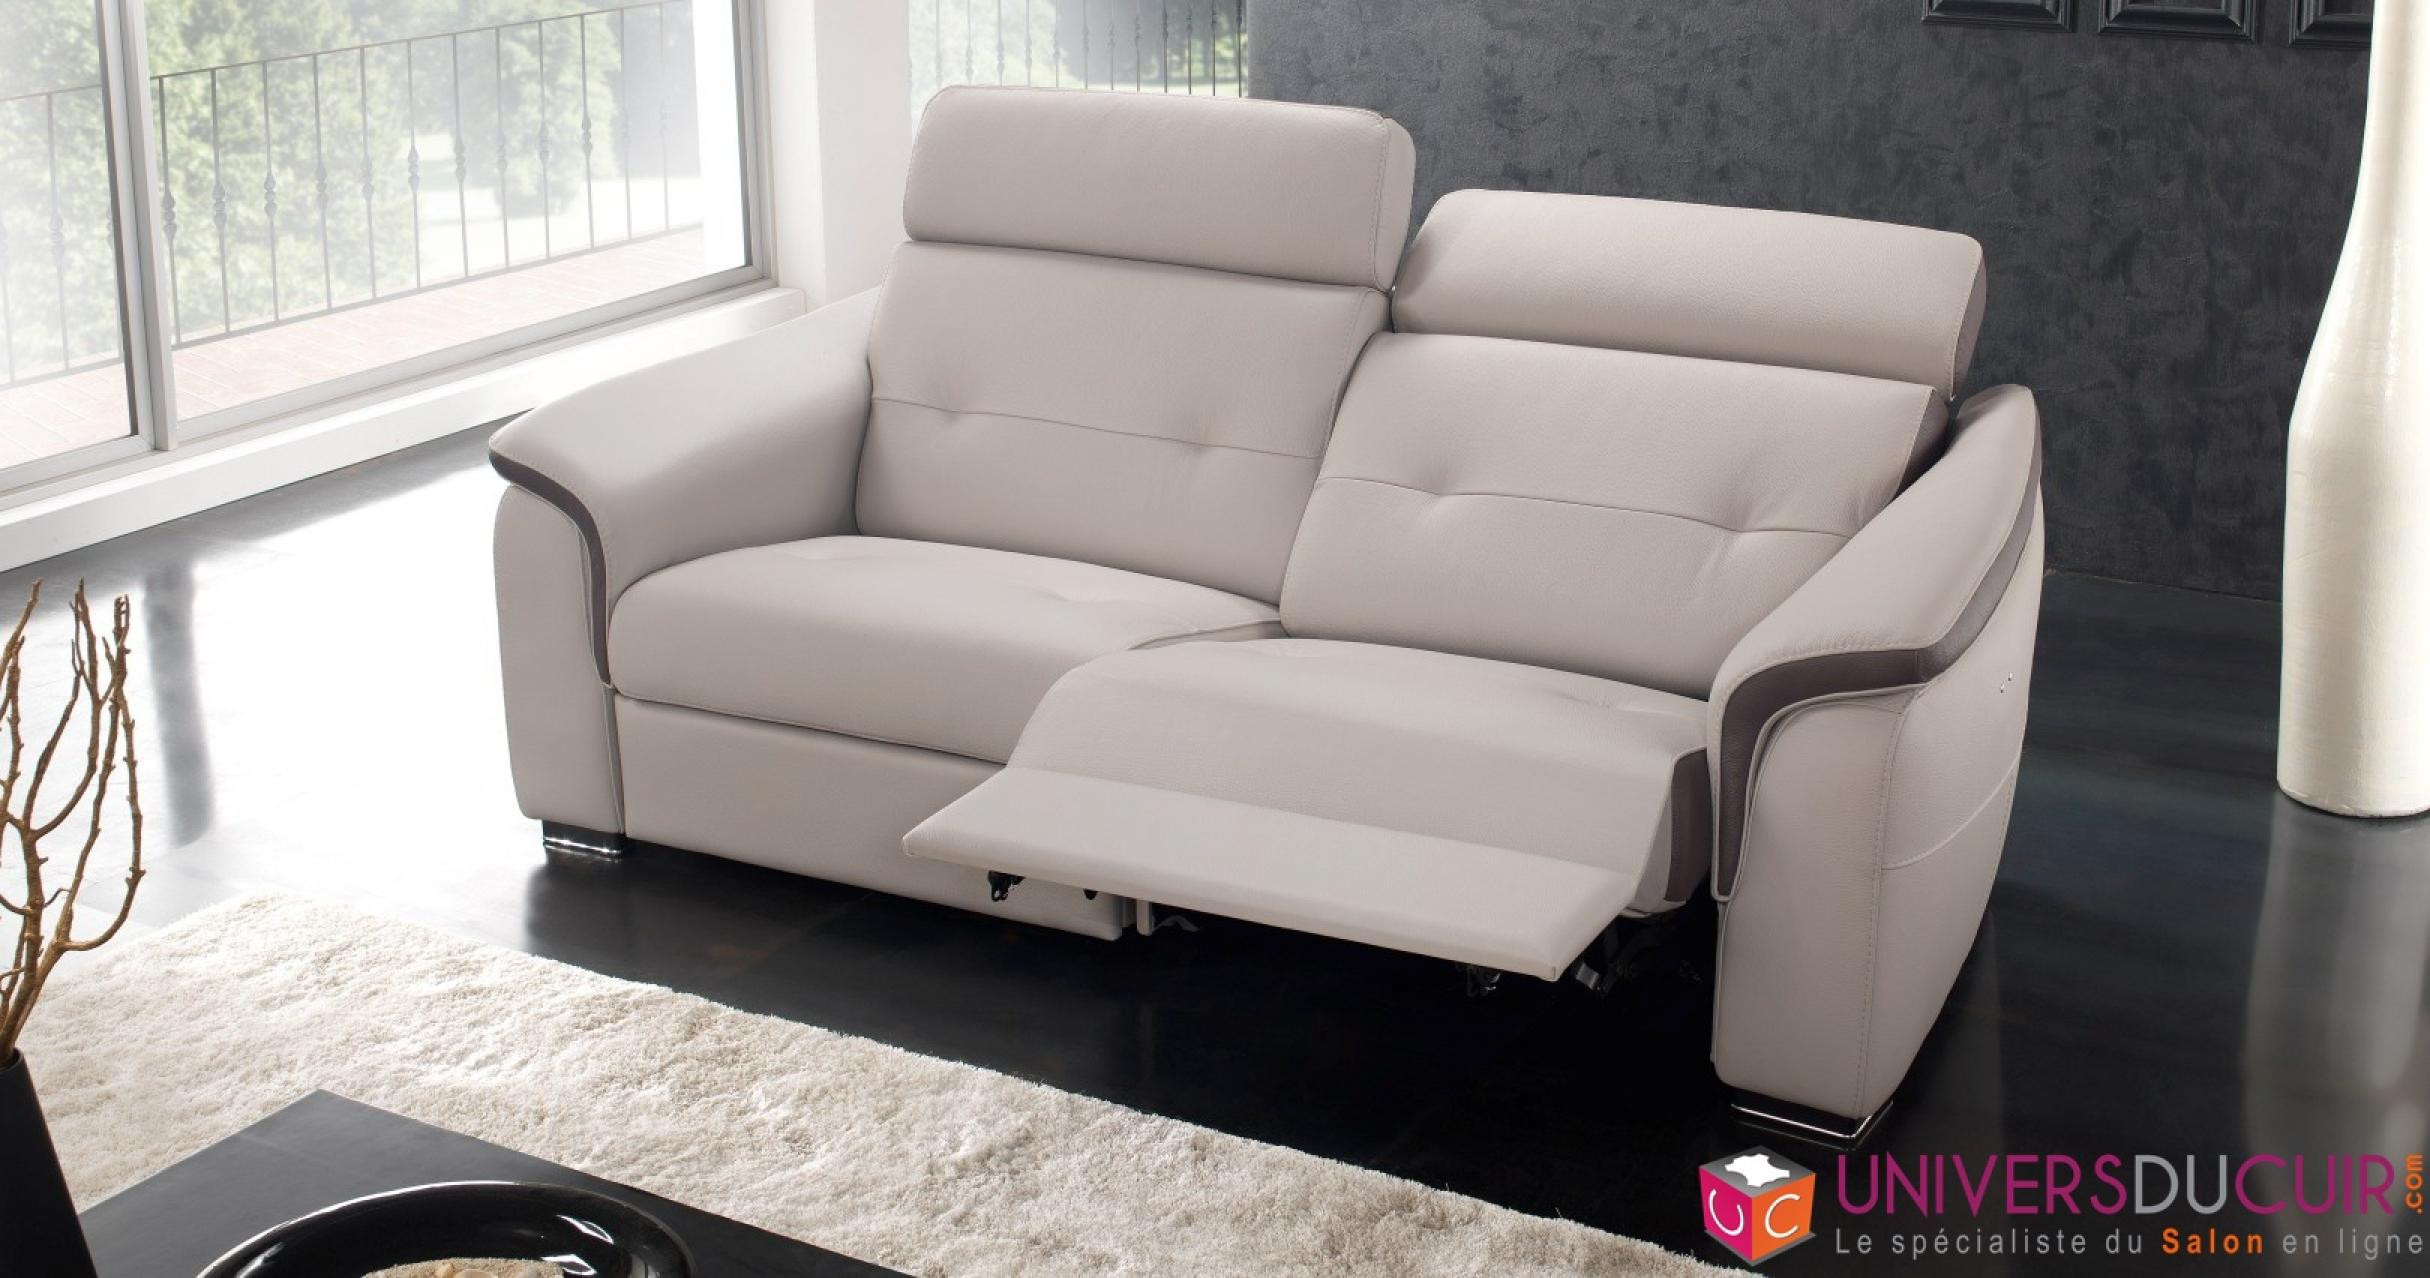 Canape Romy Conforama Beau Photographie Canap Et Fauteuil Relax Beautiful Canape Relax Electrique